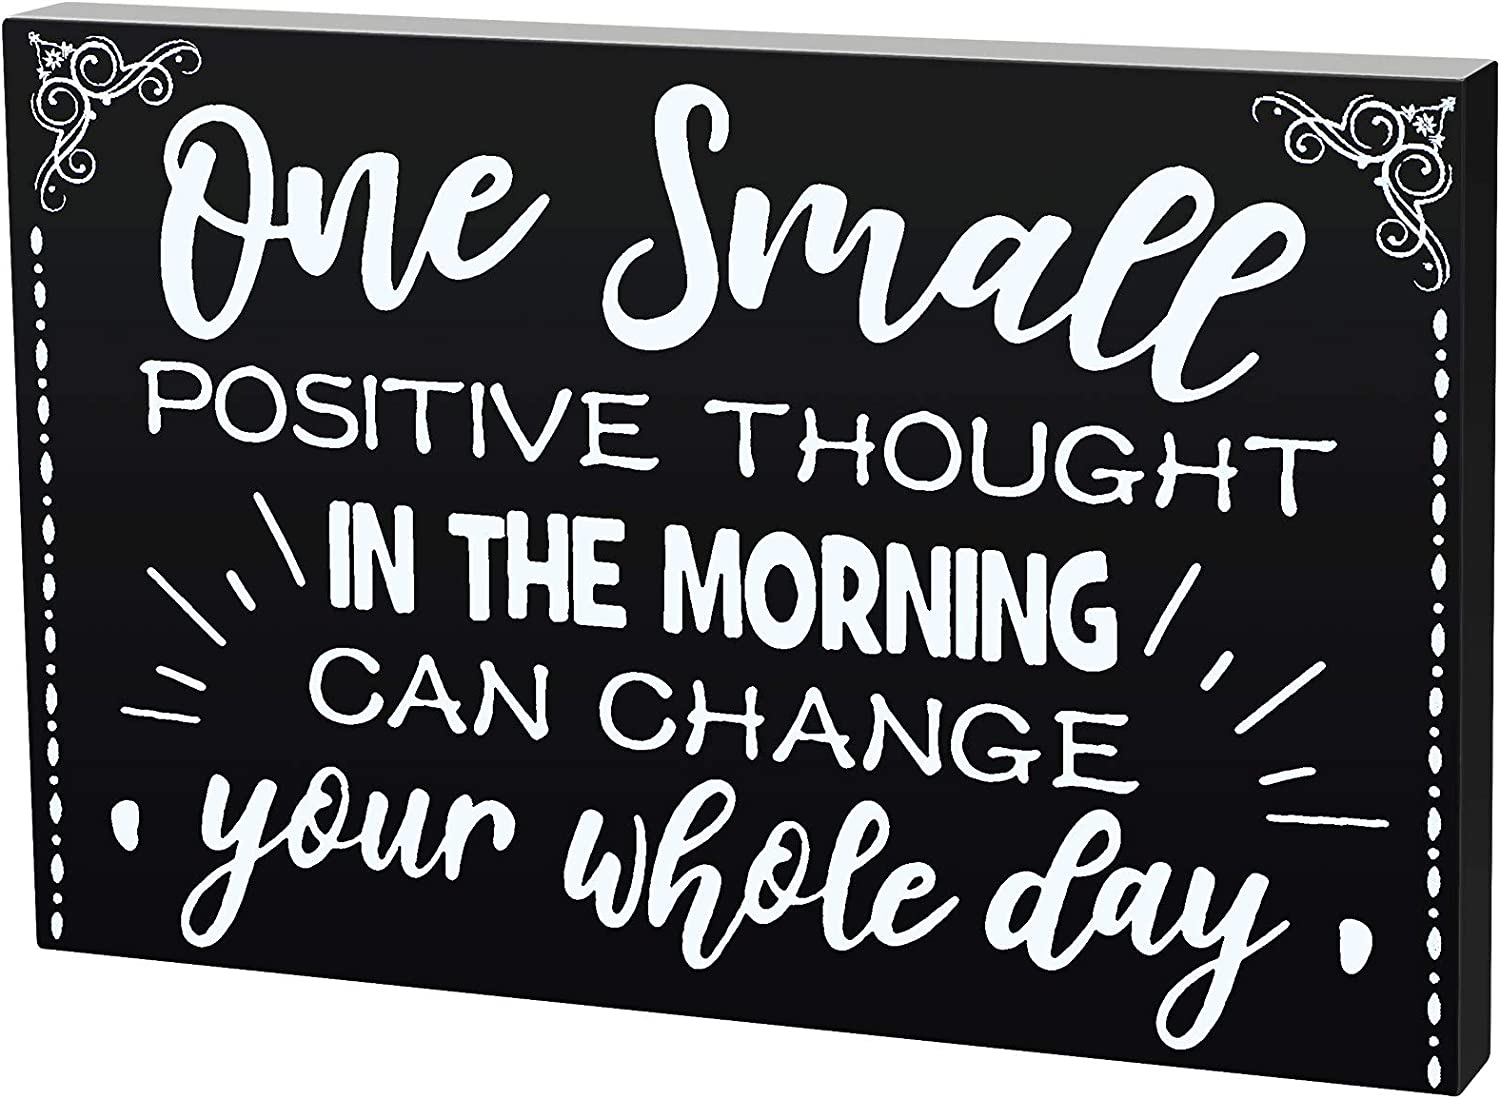 Jetec 7.87 Inch Wooden Motivational Sign Large Inspirational Word Box Sign Talk Sign Black Wood Plaque Block Desktop Decor Positve Thought Wall Decoration for Table Home Room Office Decor